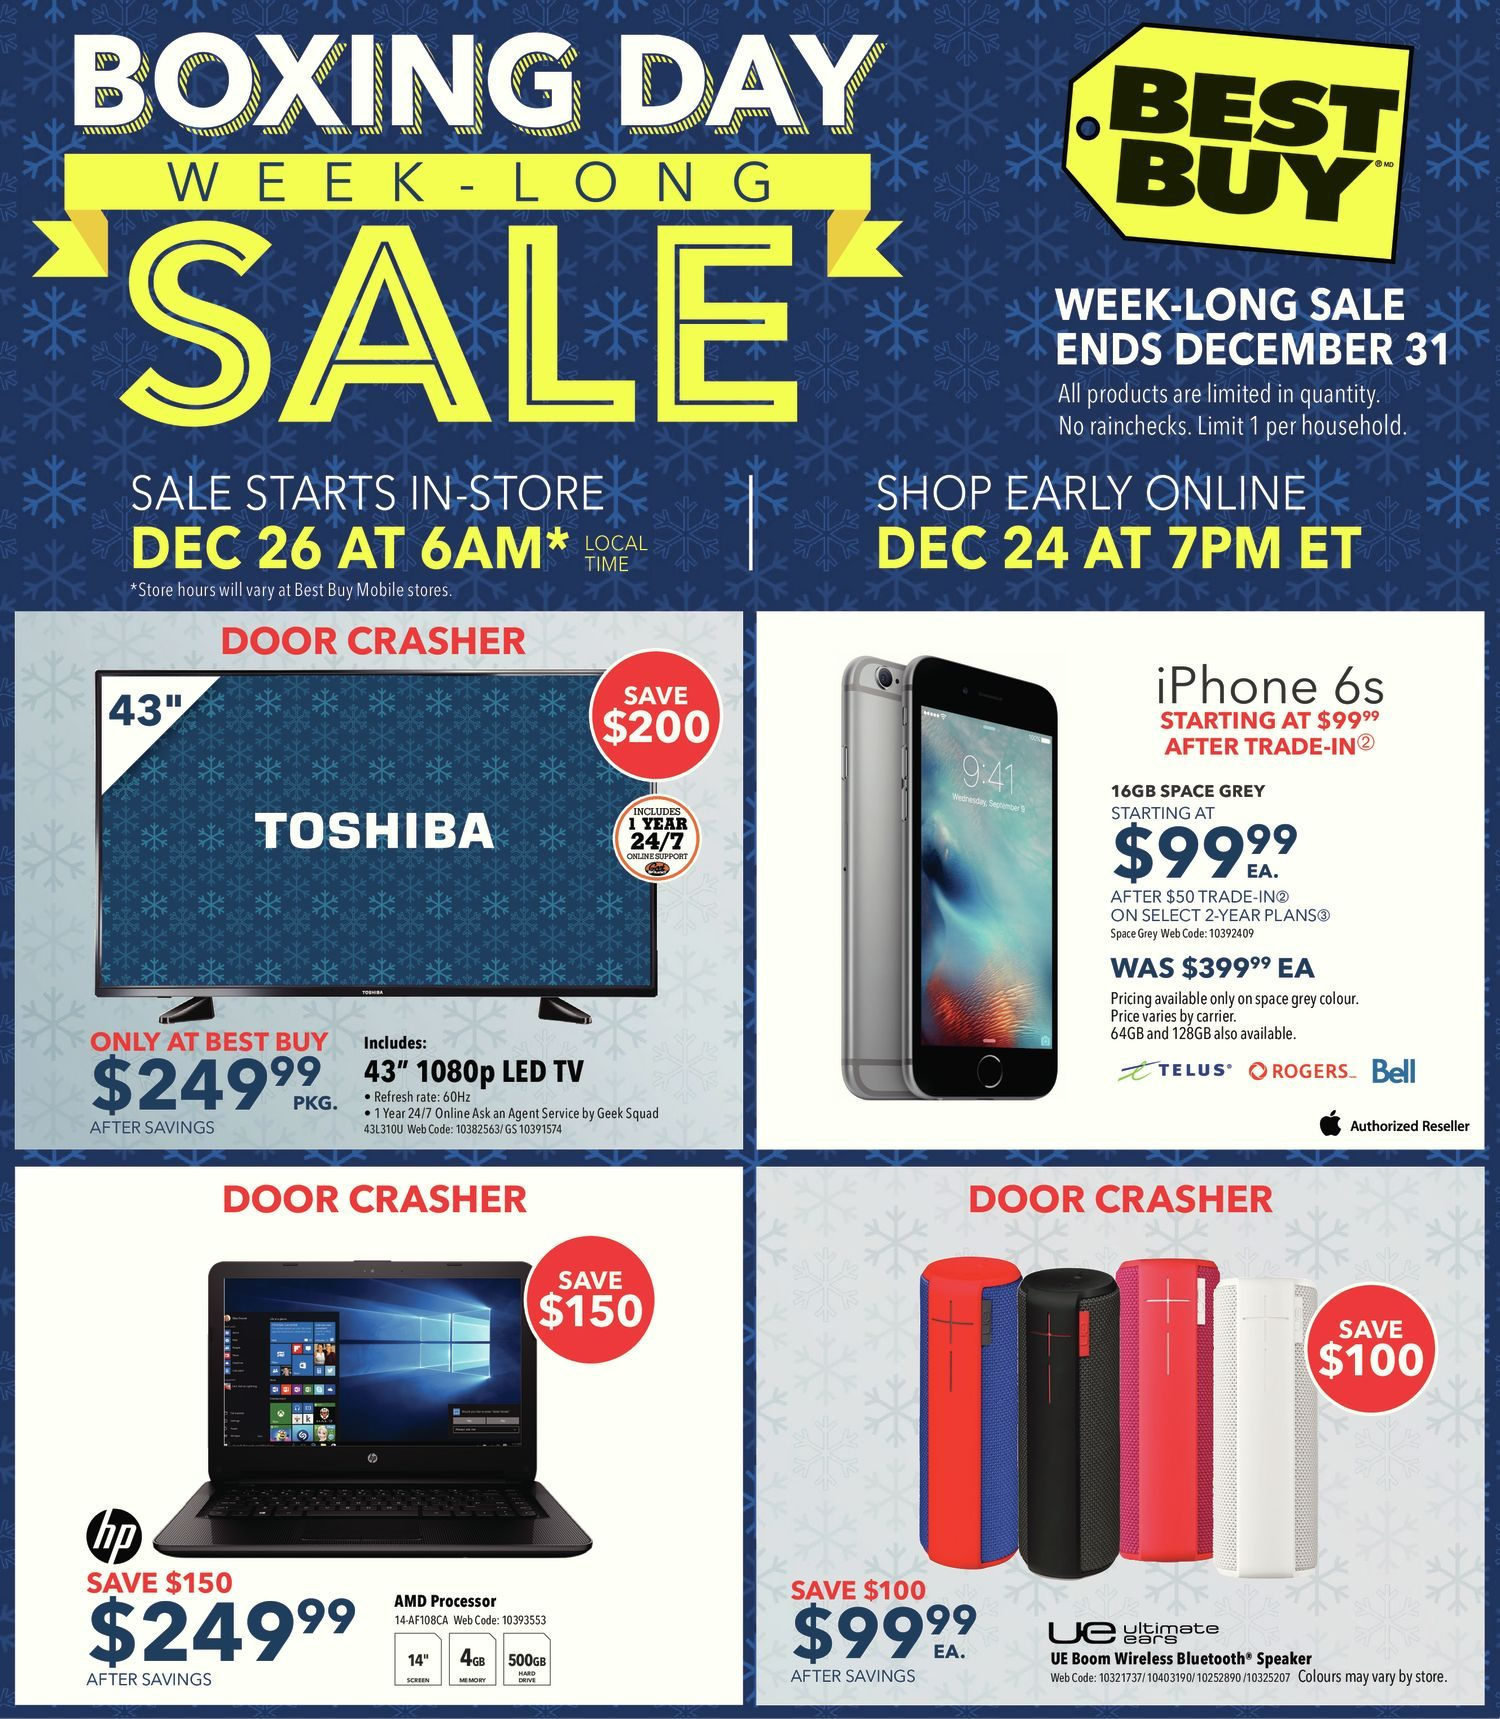 Best Buy Weekly Flyer Boxing Week Long Sale Dec 25 31 Download Image Darlington Pair Amplifier Circuit Pc Android Iphone